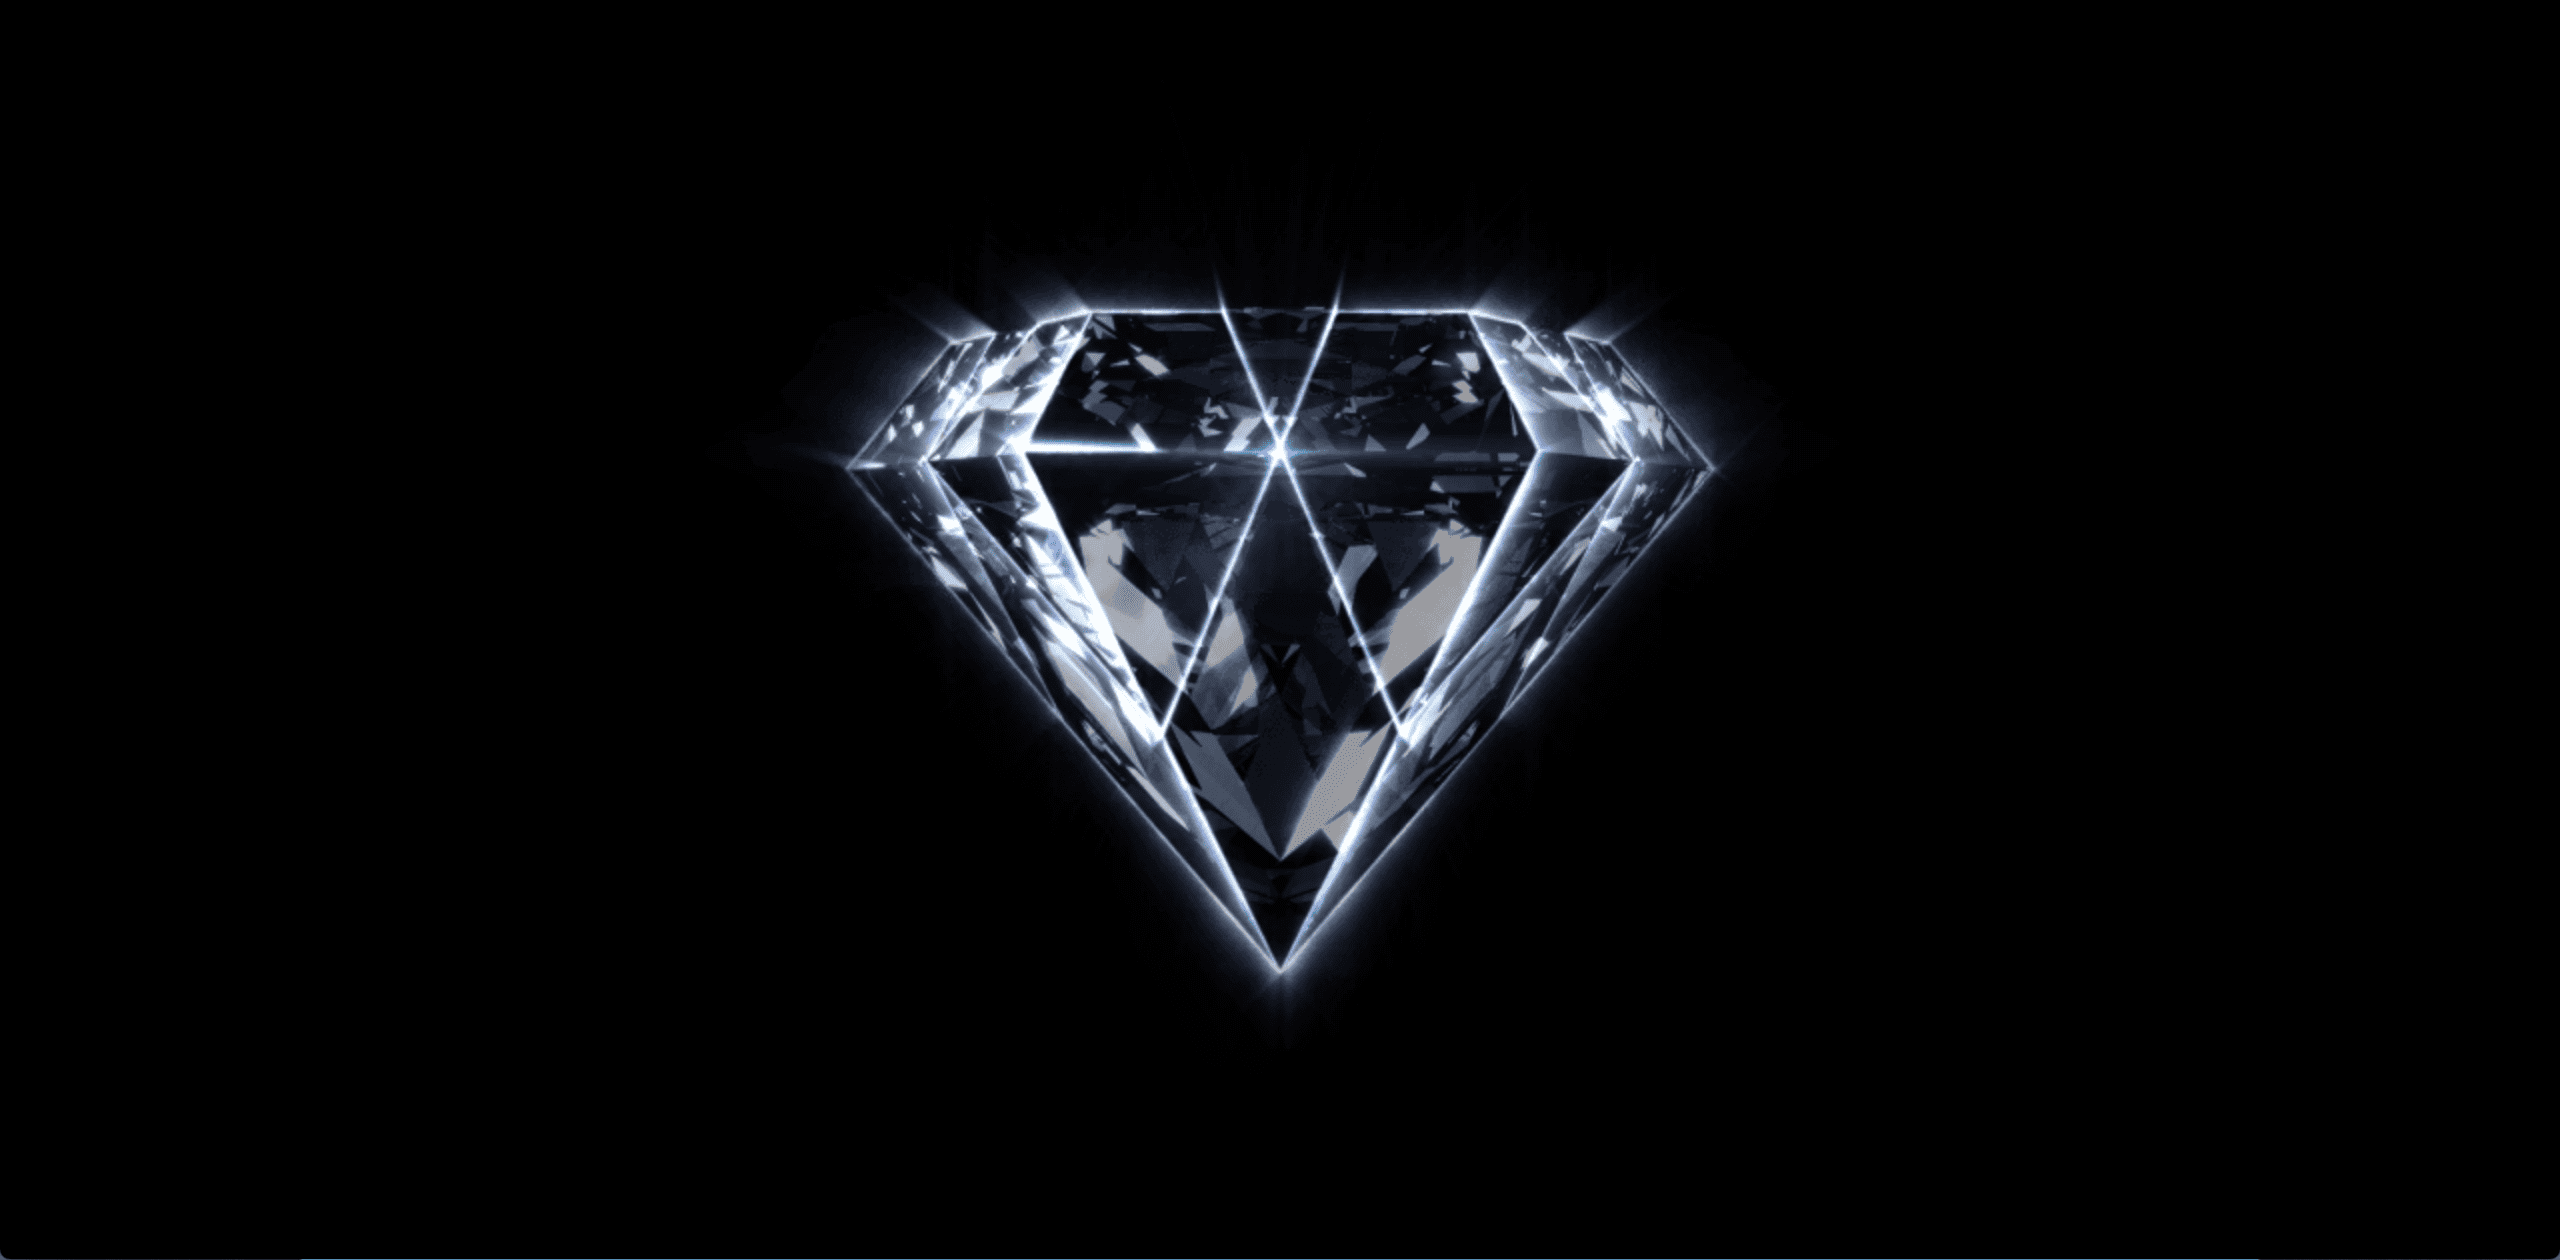 EXO Amplifies The Anticipation For Their Next Release With Dazzling New Logo